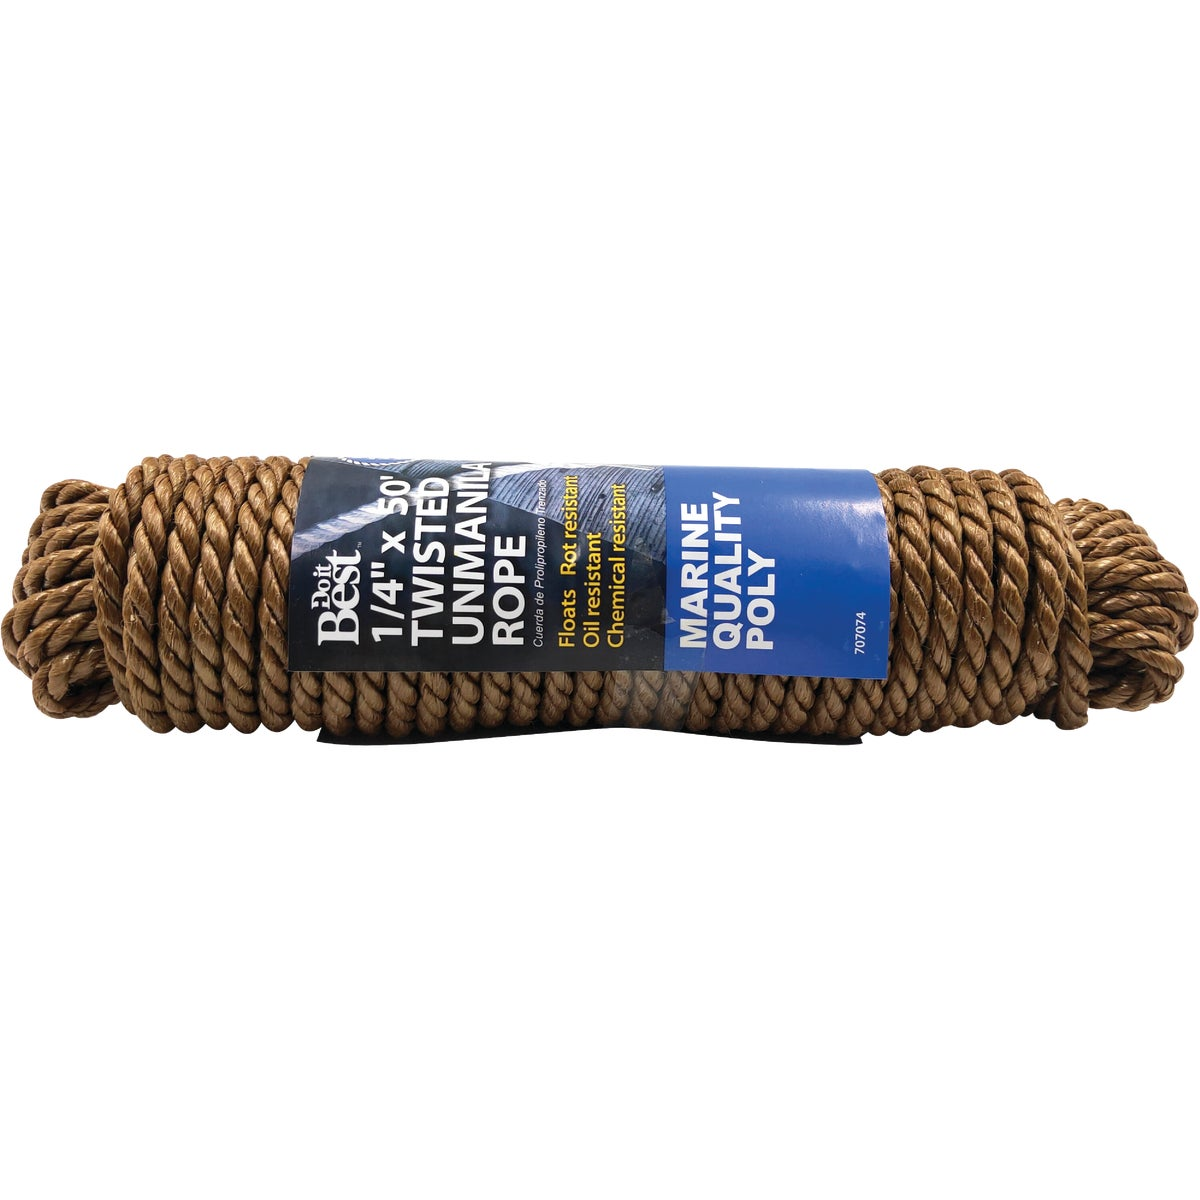 1/4X50' UNMANILA ROPE - 707074 by Do it Best